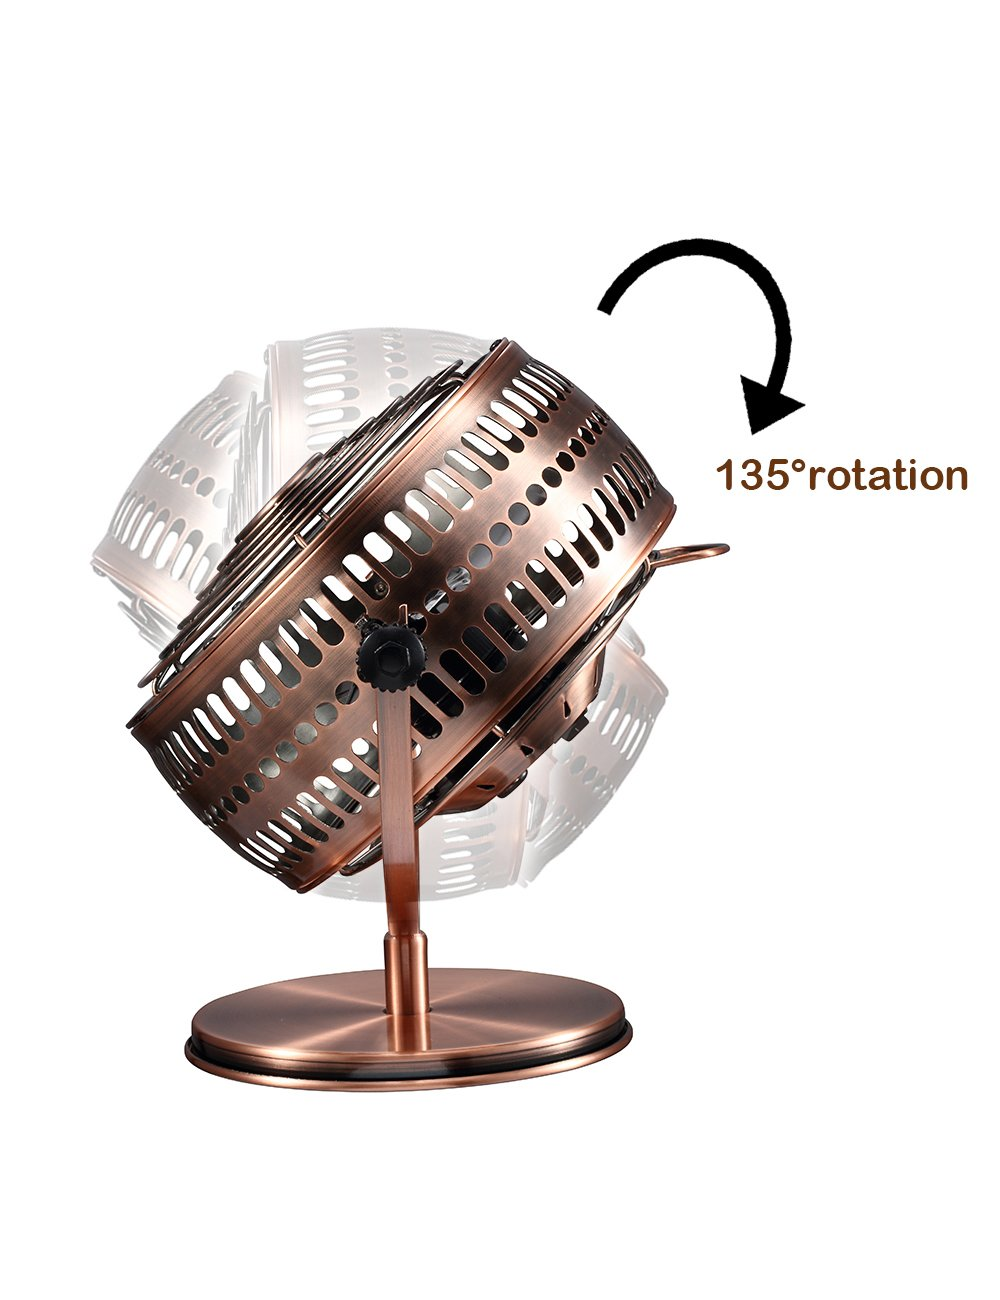 USB Retro Desktop Metal Blades Cooling Fan with 135 Degree Rotation.Perfect for Laptop Notebook PC Desk Table Fan Metal Bronze.